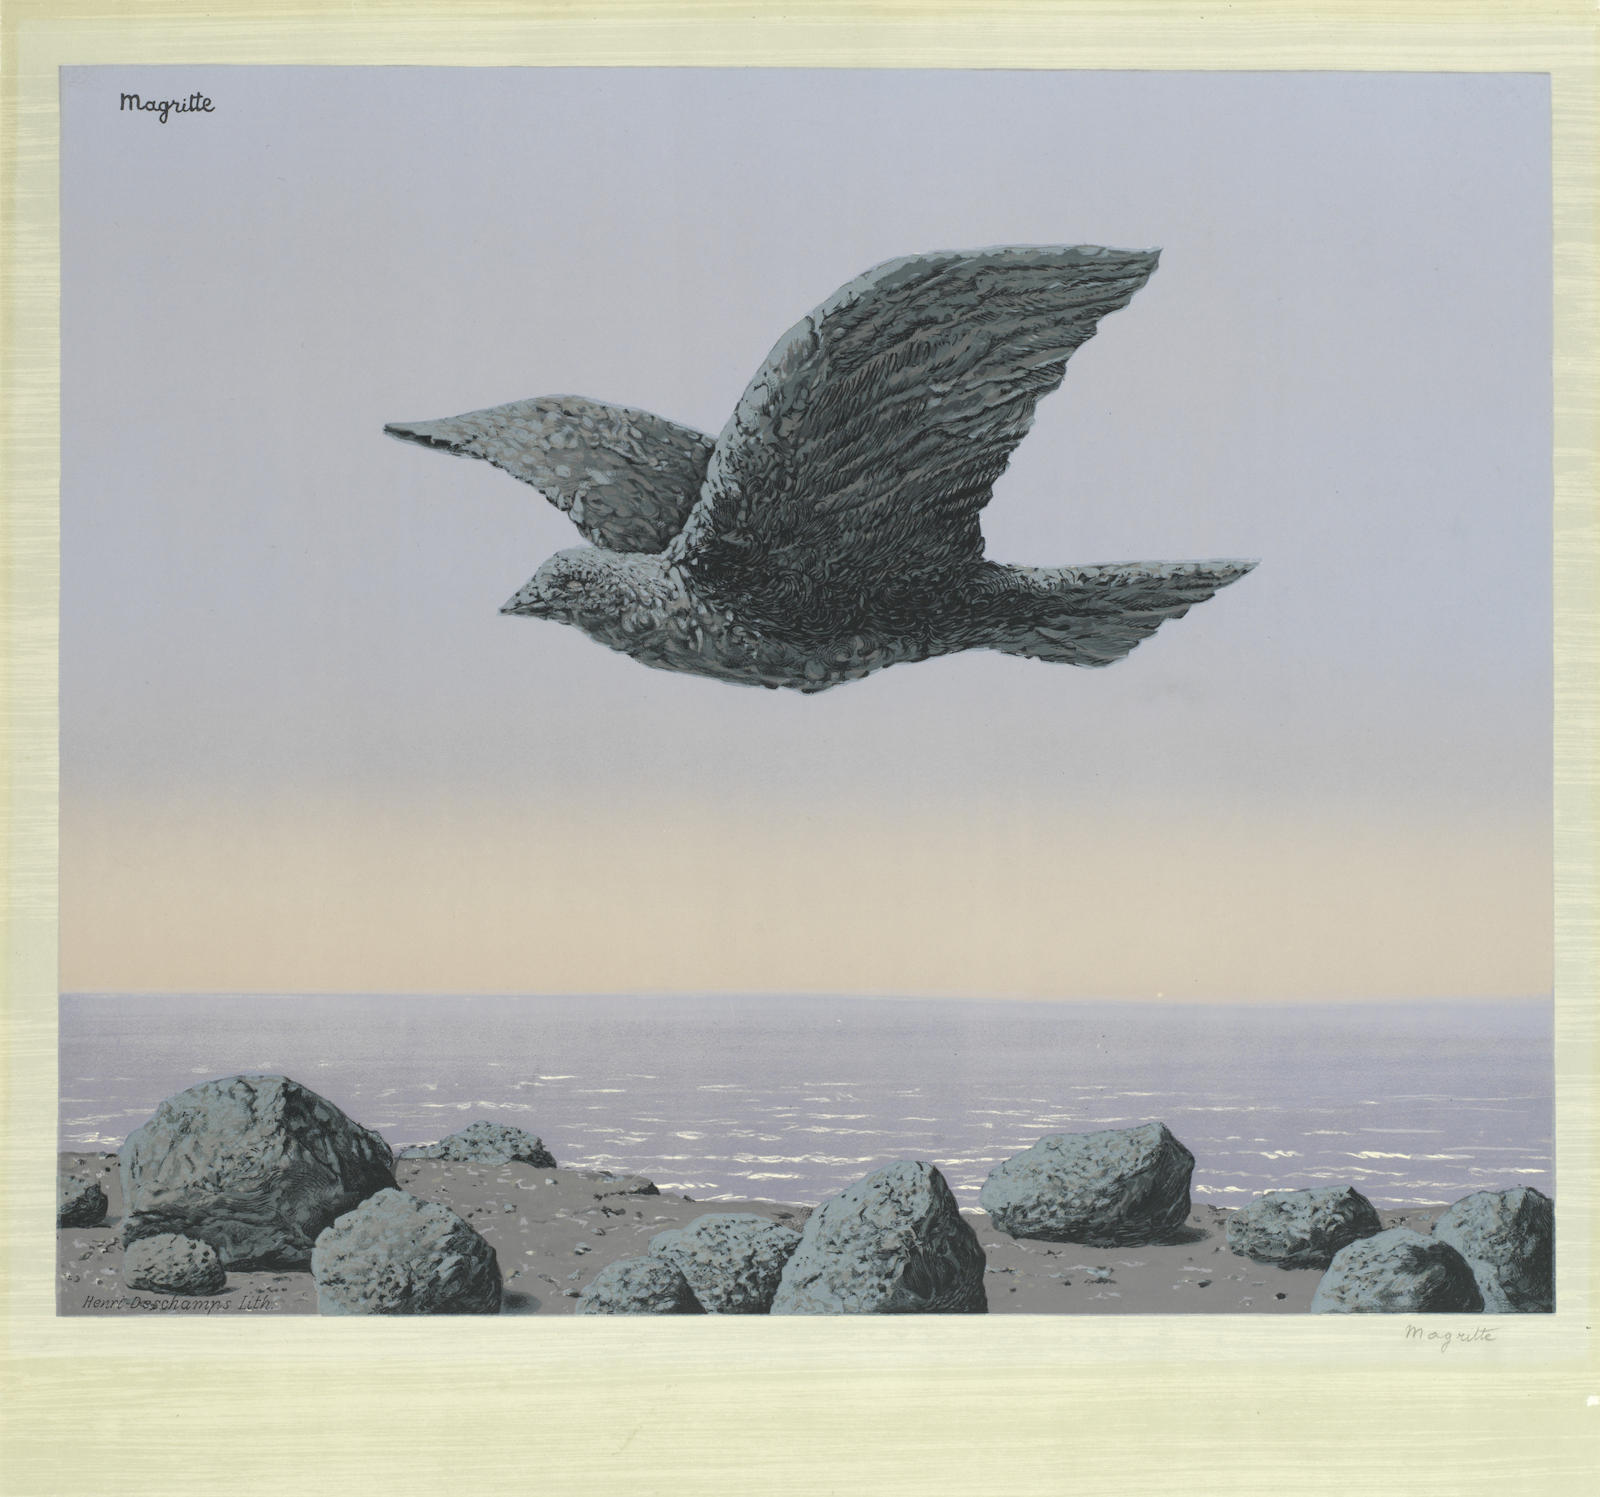 Rene Magritte-After Rene Magritte - L'Idole-1965